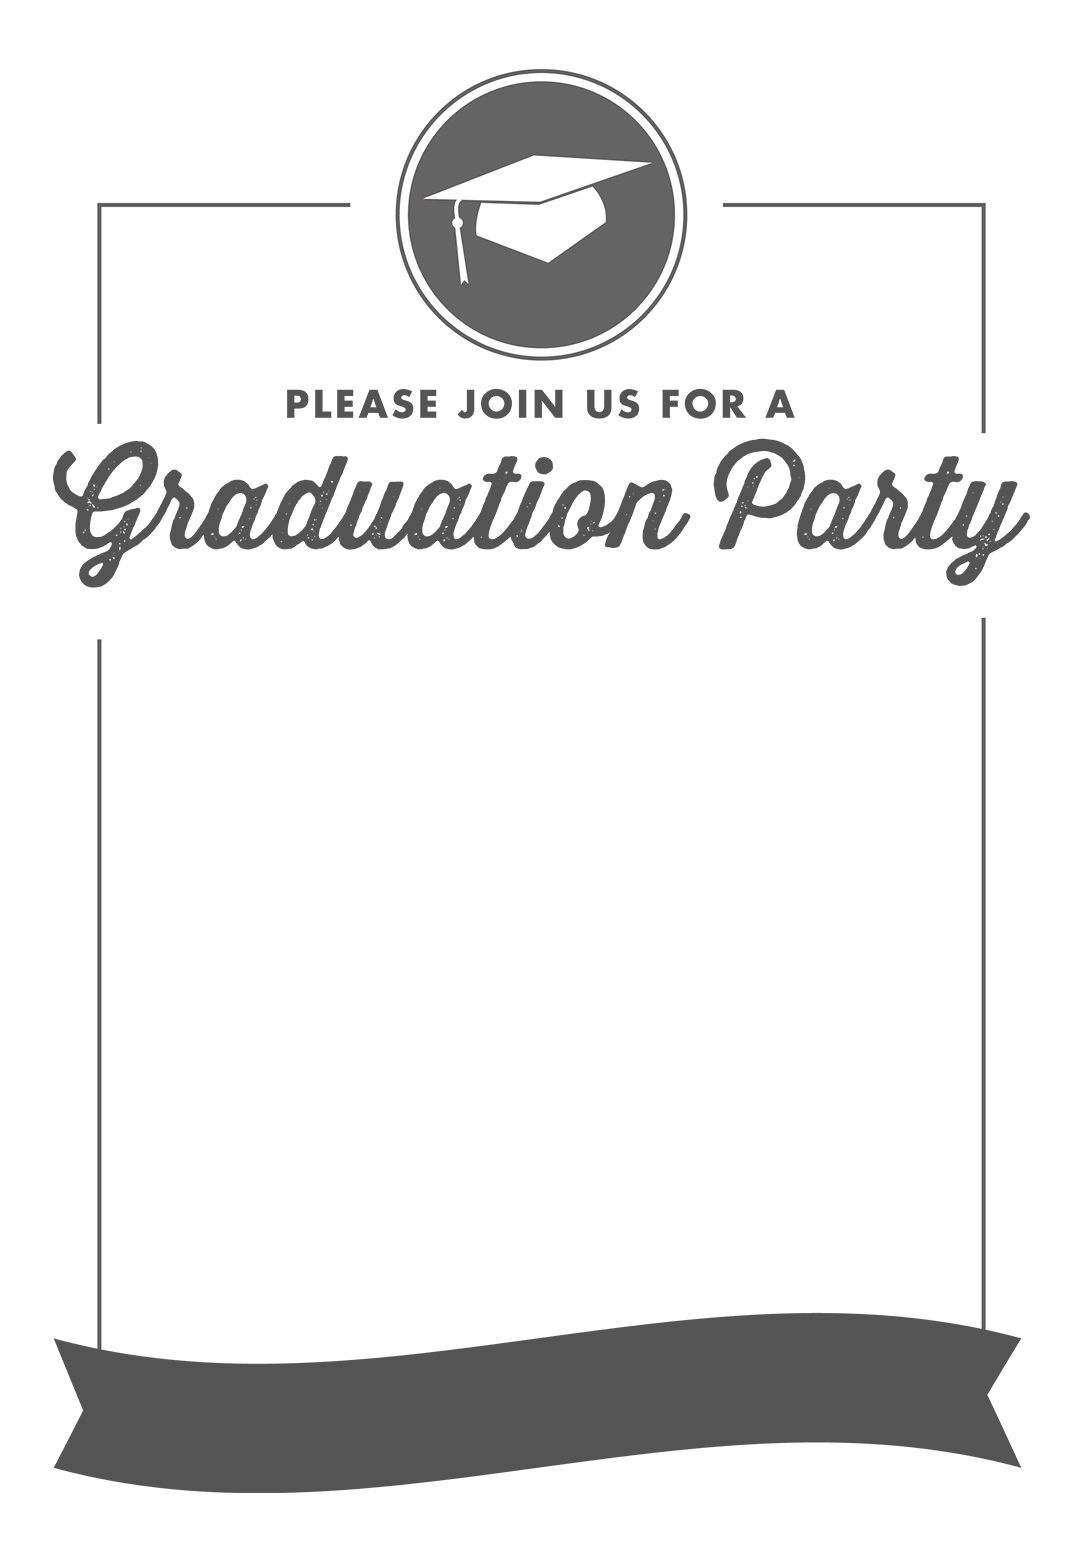 Free Printable Graduation Party Invitation Template | Greetings - Free Printable Graduation Party Invitations 2014